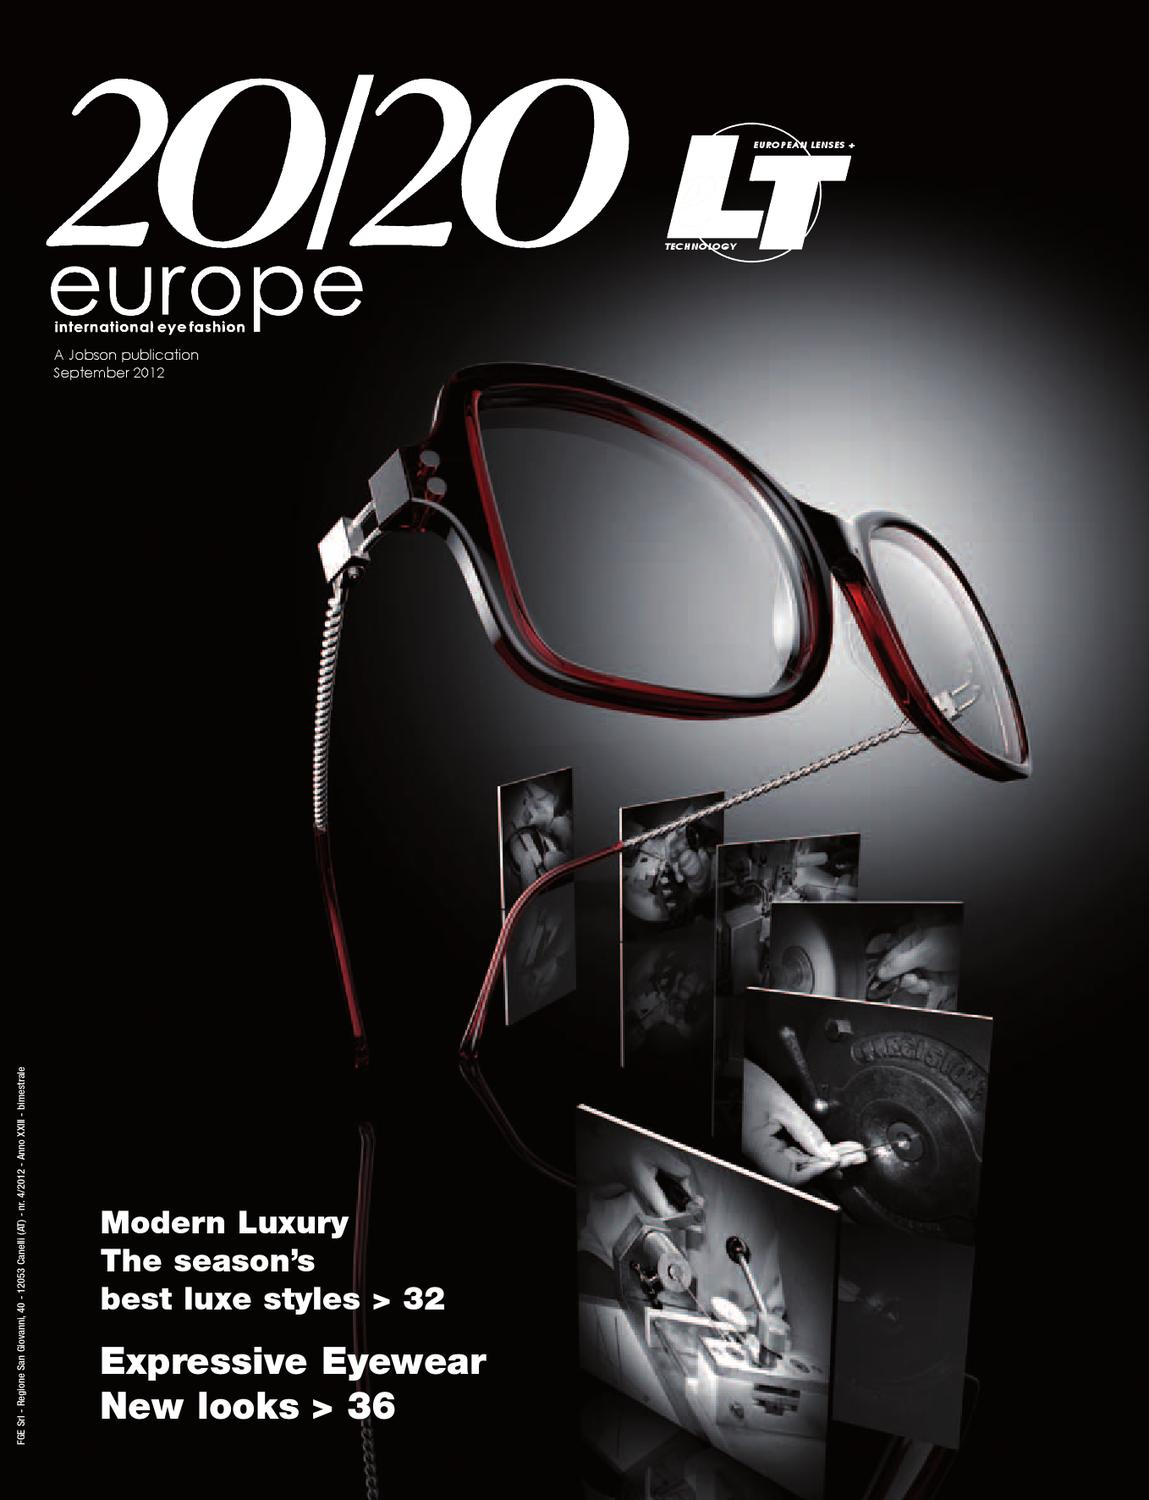 20acdc537d28a8 20 20 Europe - September 2012 by Rivista Sfogliabile - issuu